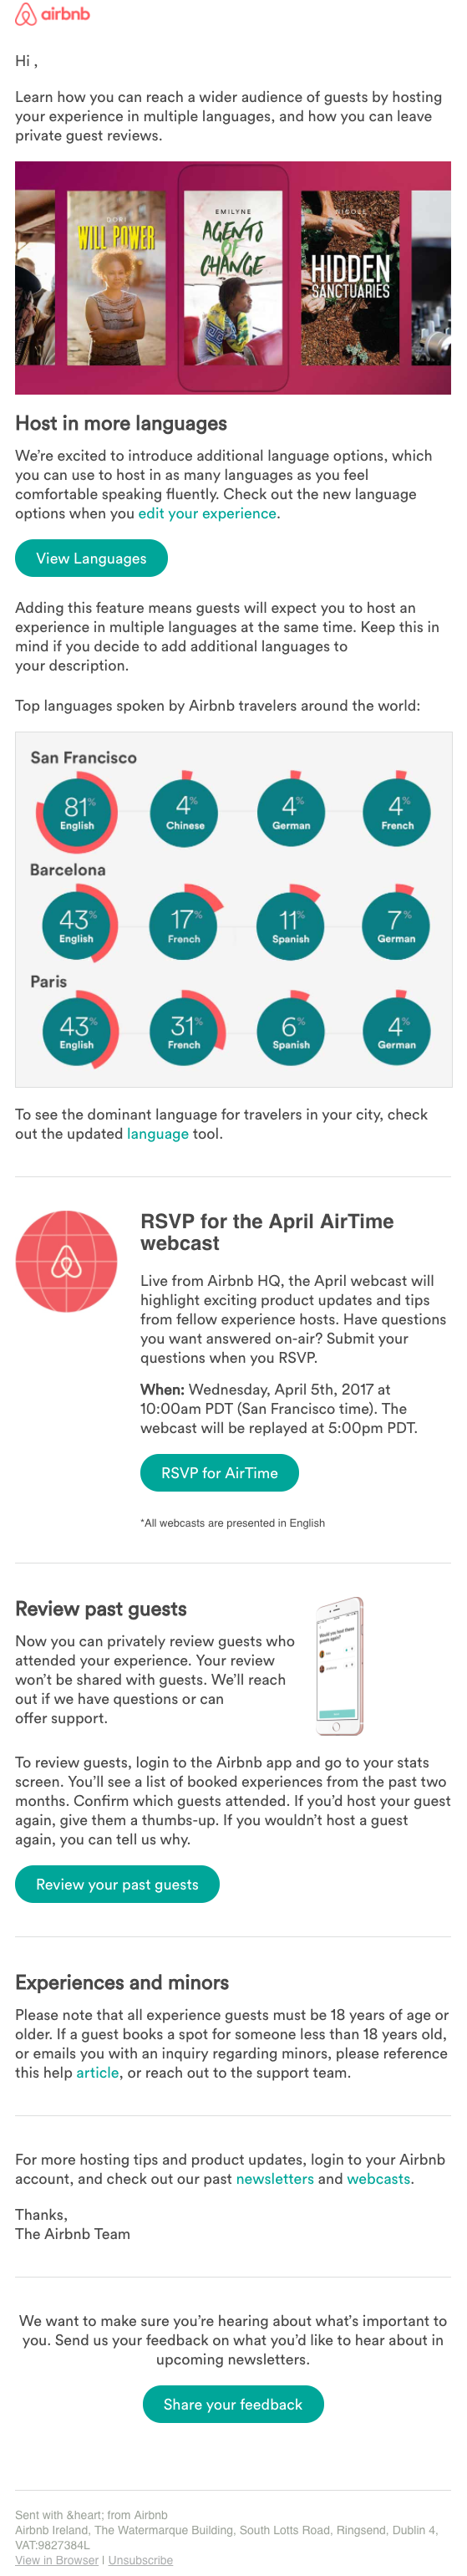 Alexandra Friedman Writing Samples Airbnb Emails Newsletters